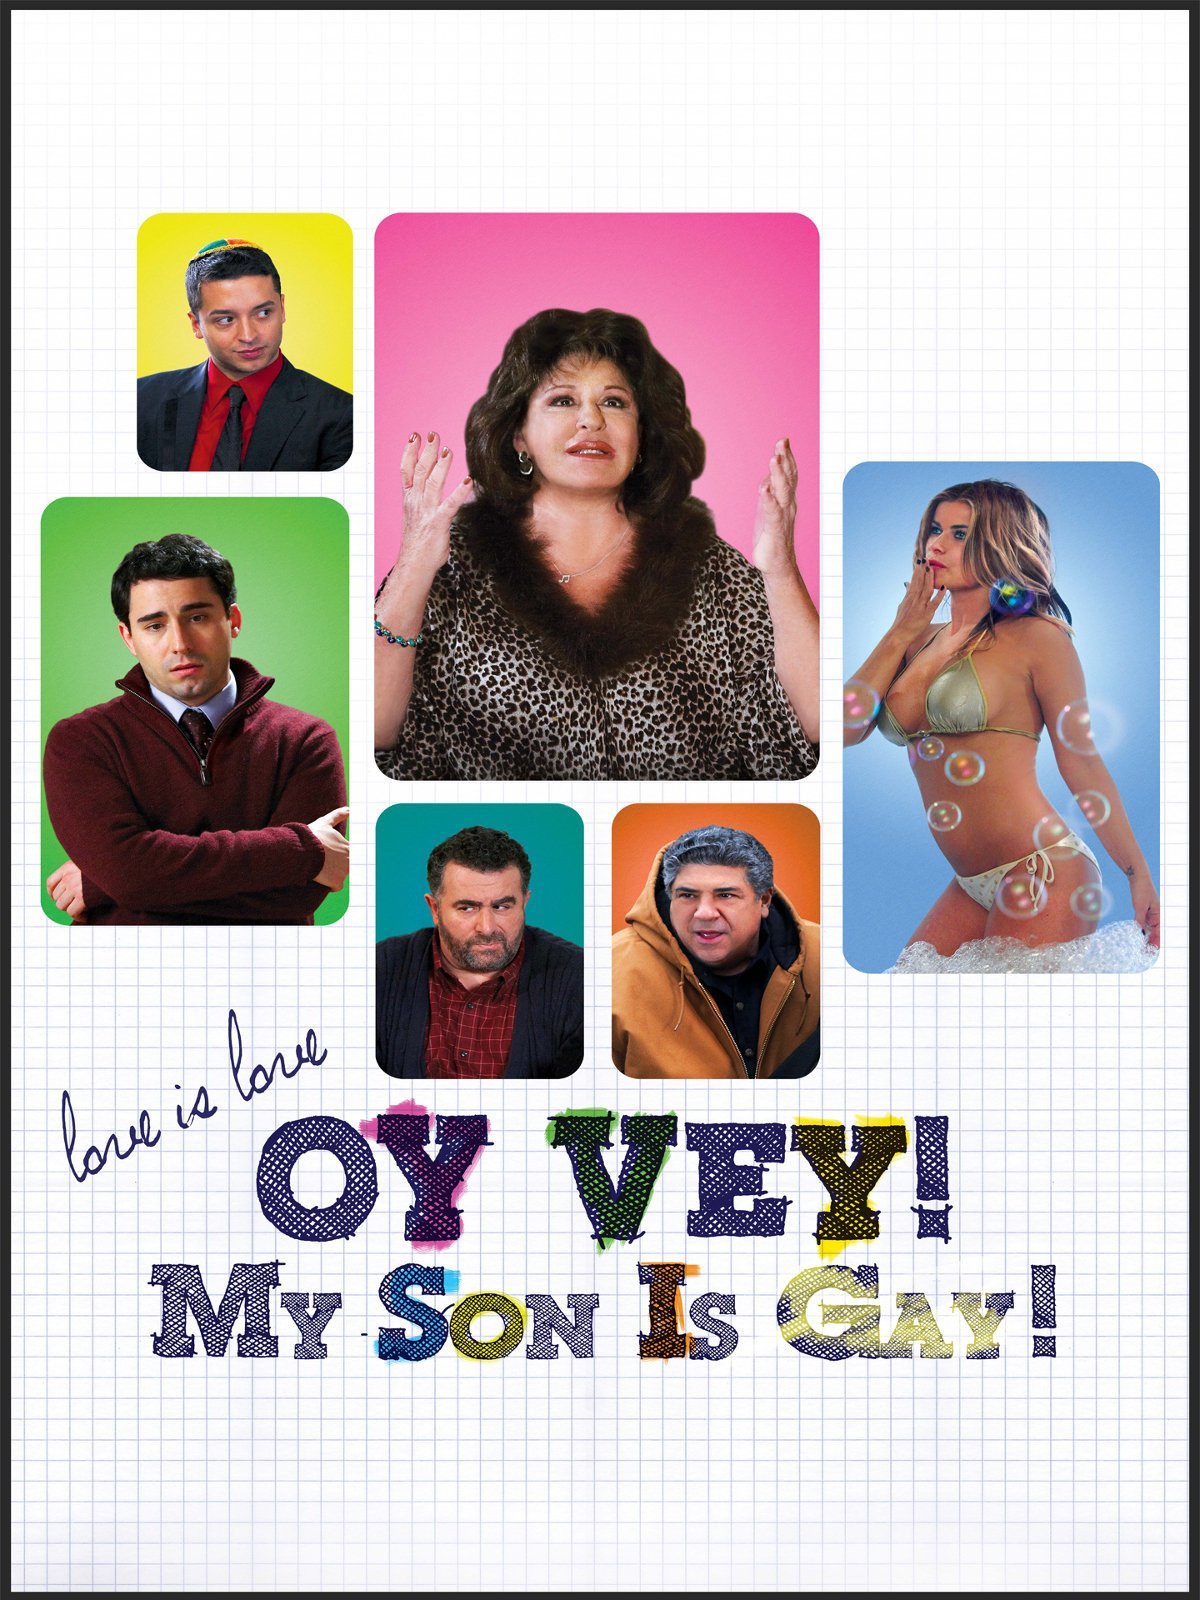 Oy Vey! My Son Is Gay!! hd on soap2day